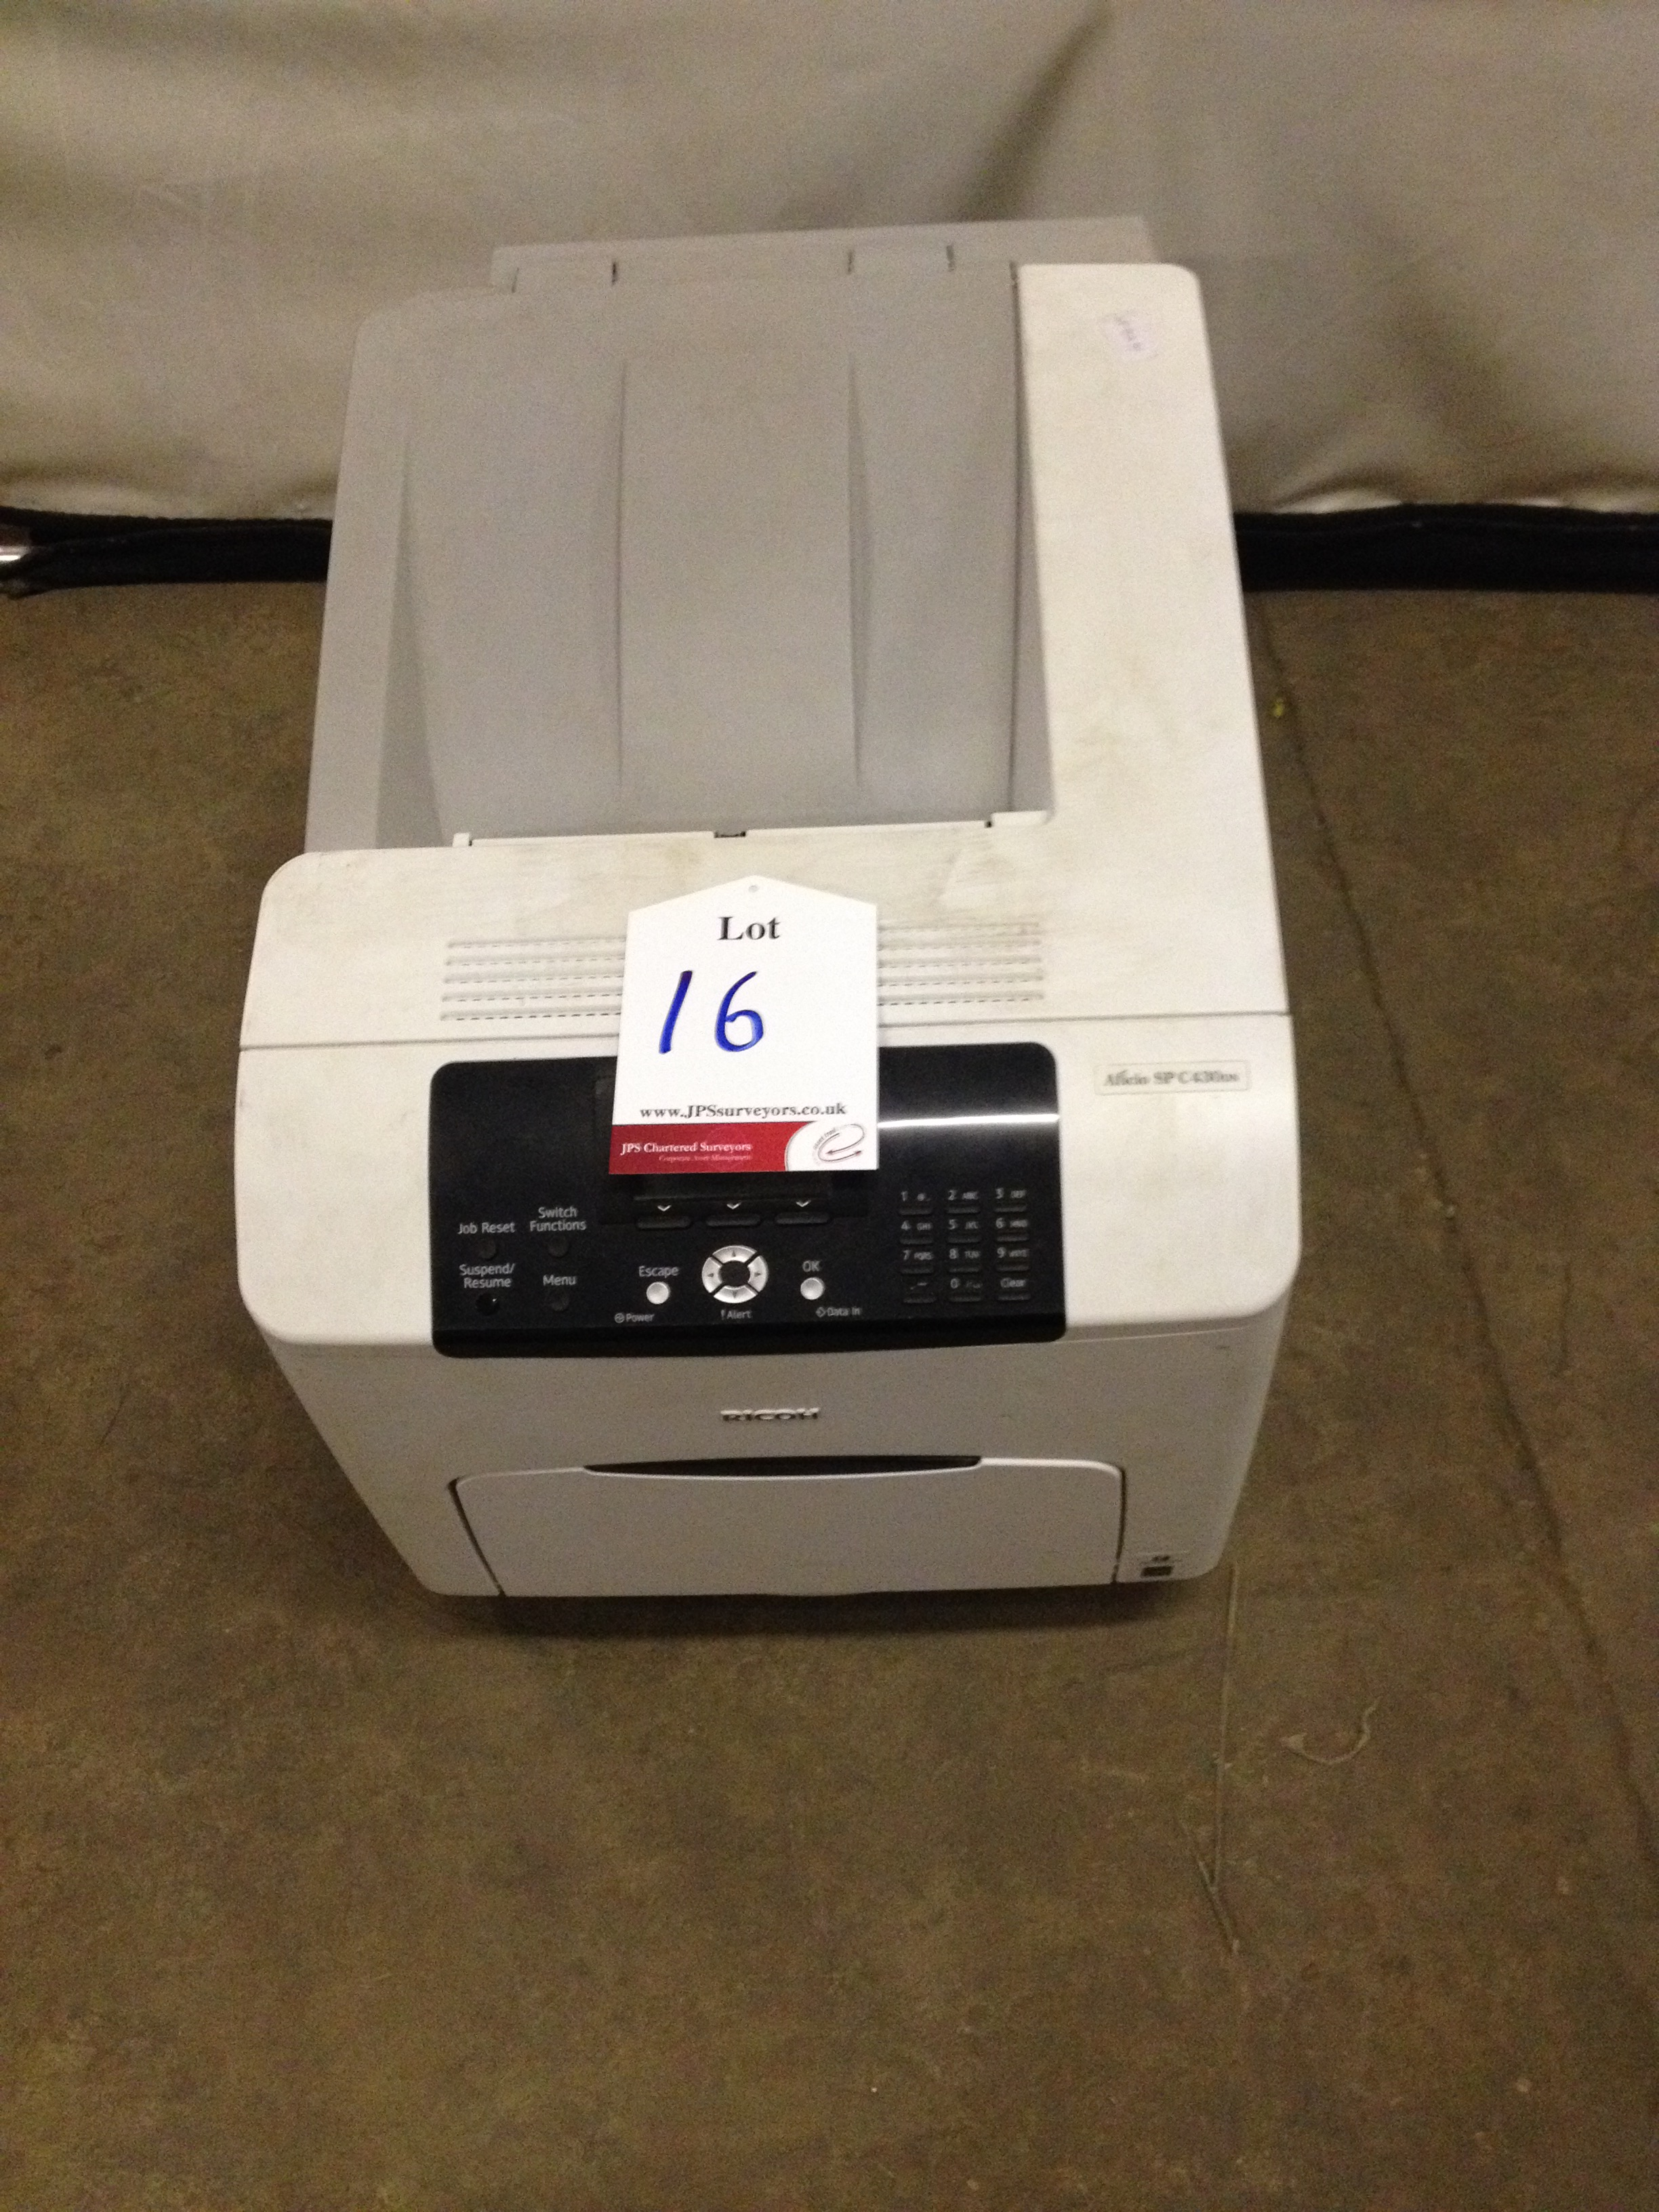 Ricoh Printer - Aficio SP C430DN (White)